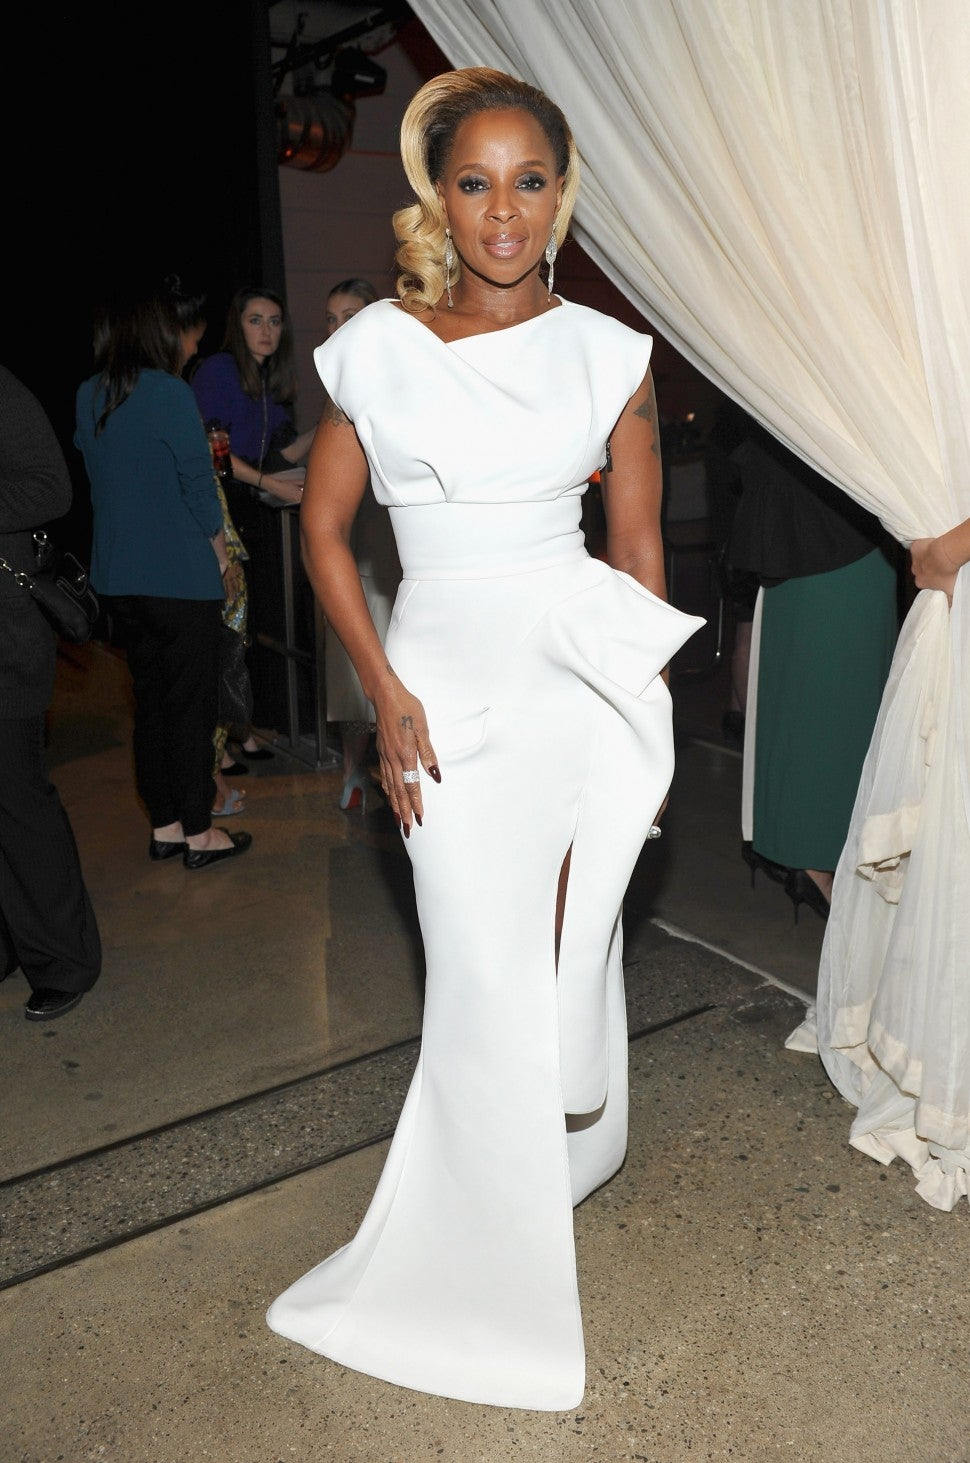 mary_j_blige_gettyimages-869219932.jpg